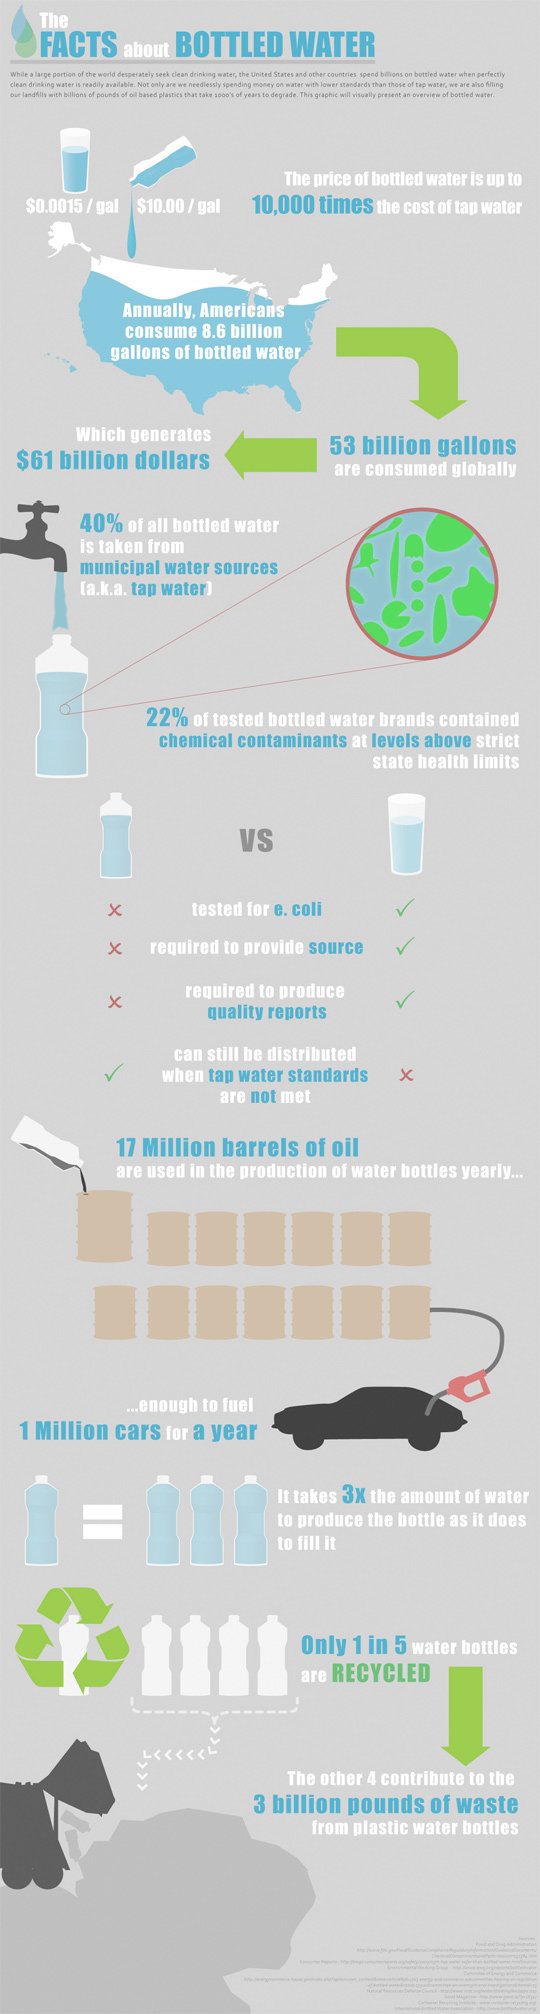 The facts about bottled water #infographic